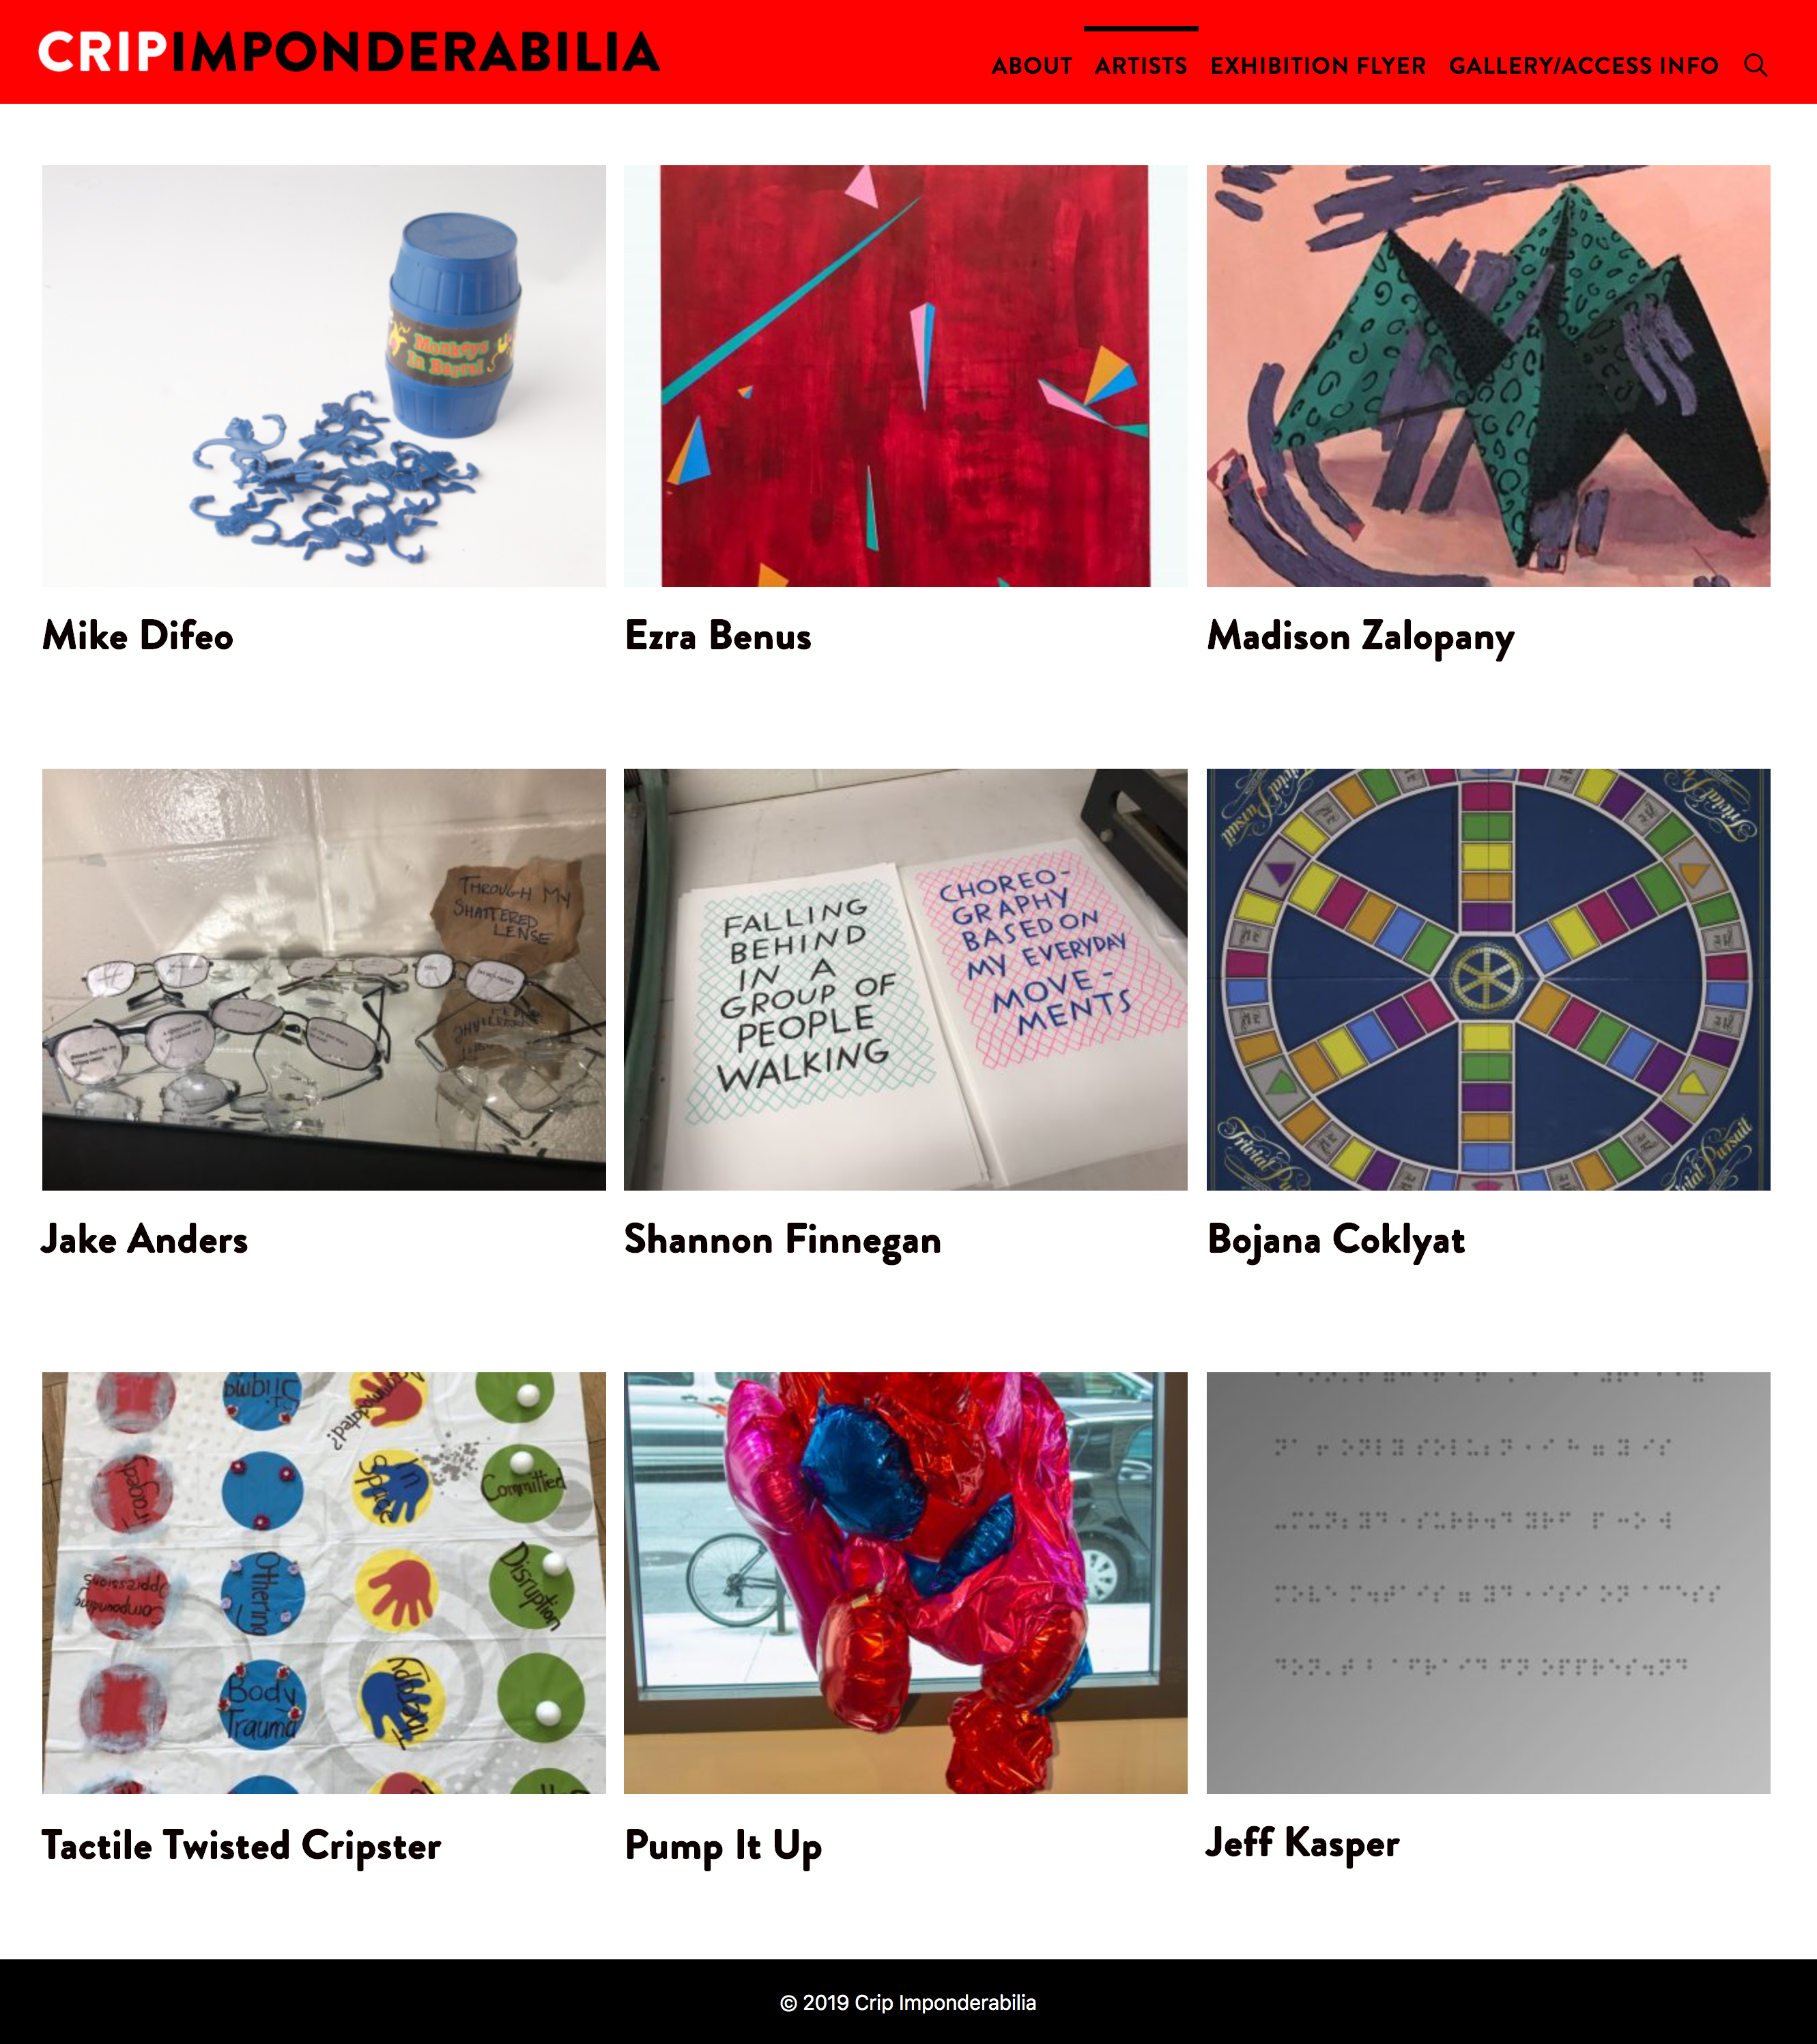 Crip Imponderabilia artist page with a grid of artists and photos of their artwork.